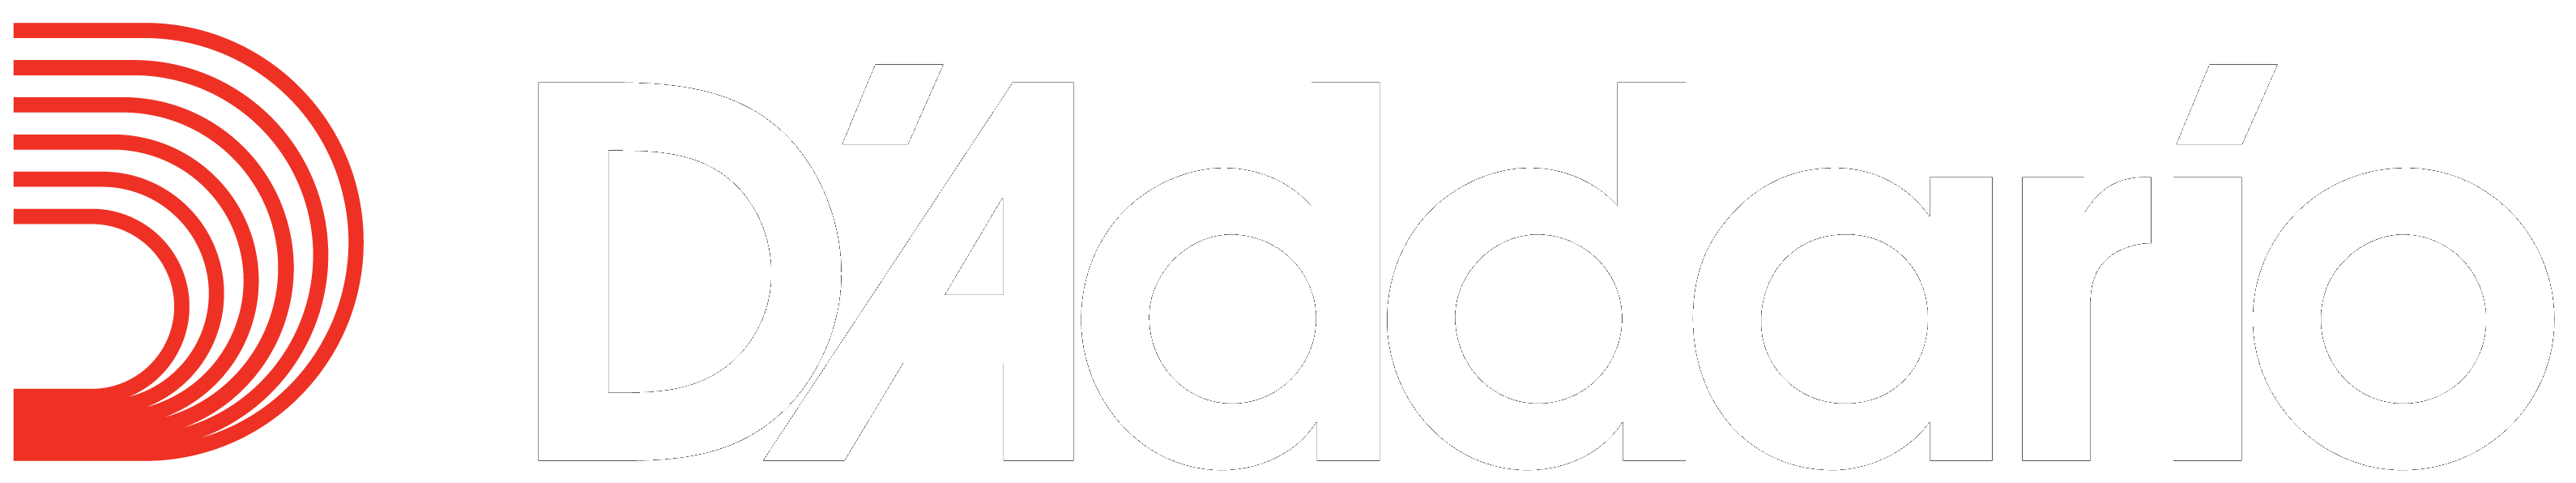 D'Addario Germany